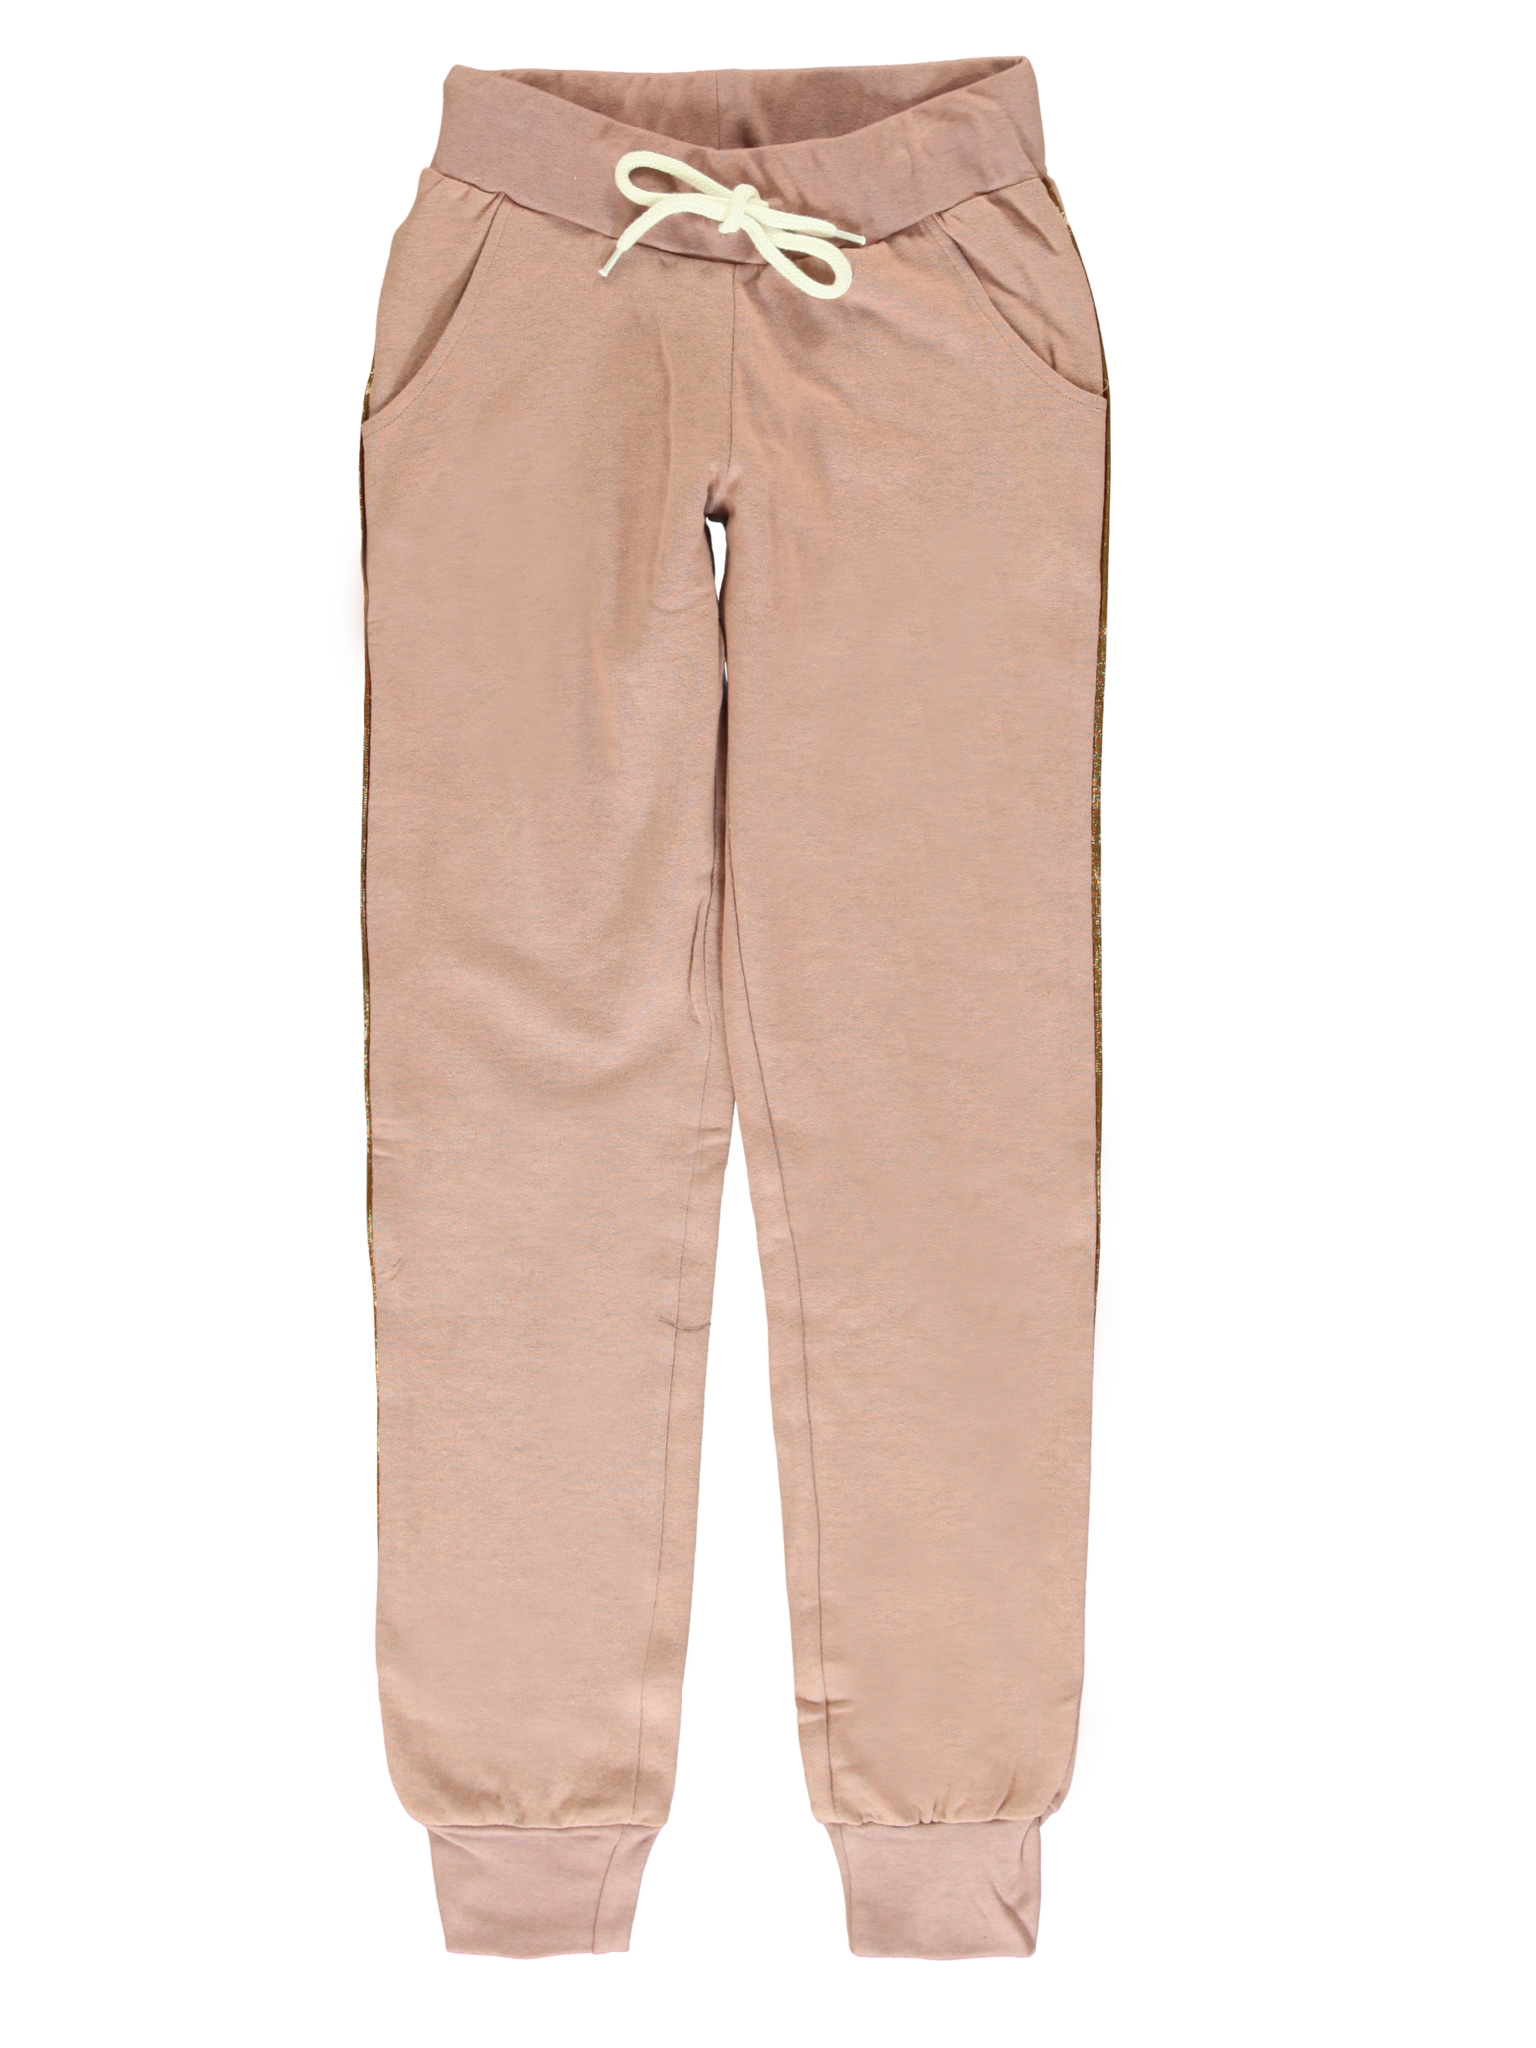 All Brands | Winterproducts Teen Girls | Jogging Pant | 12 pcs/box